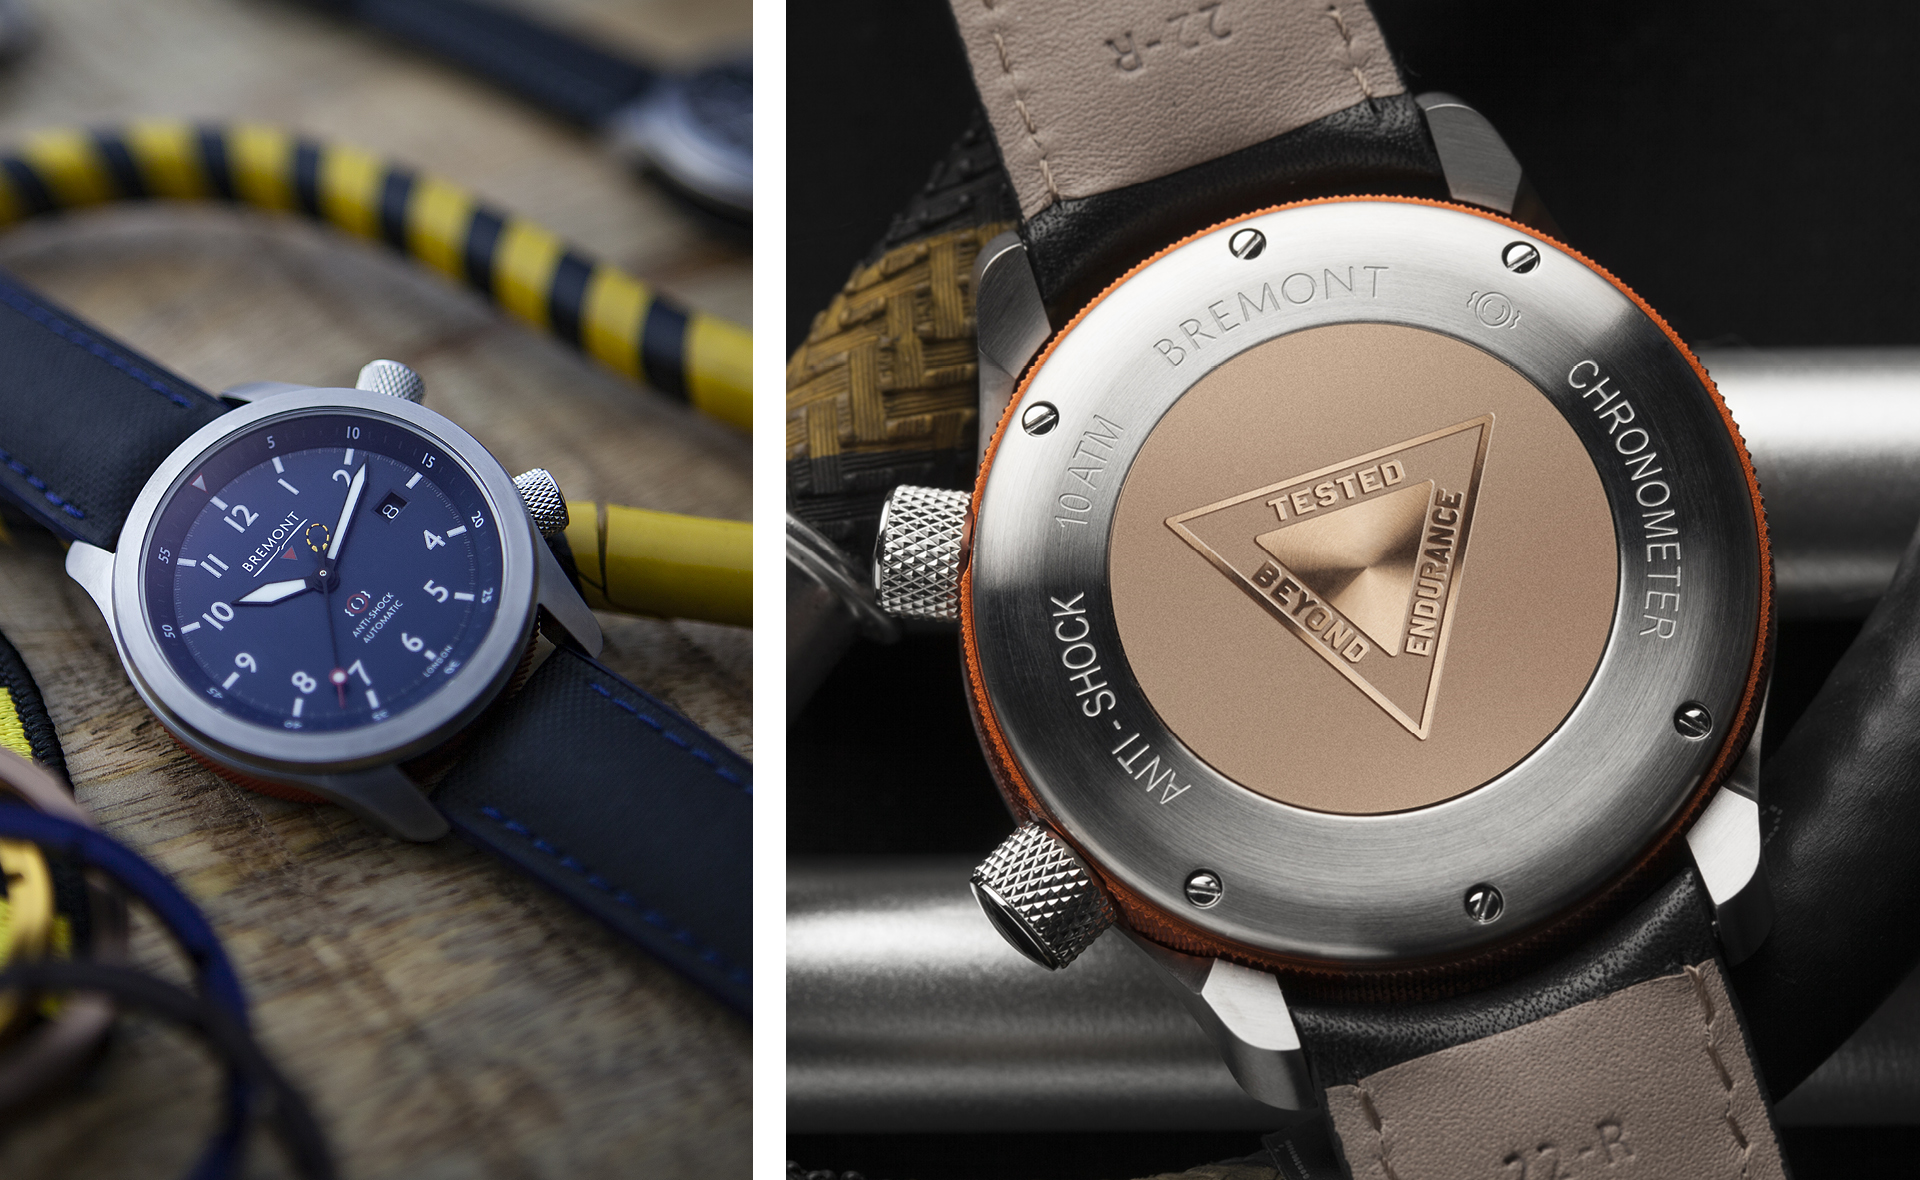 The Bremont MBII watch